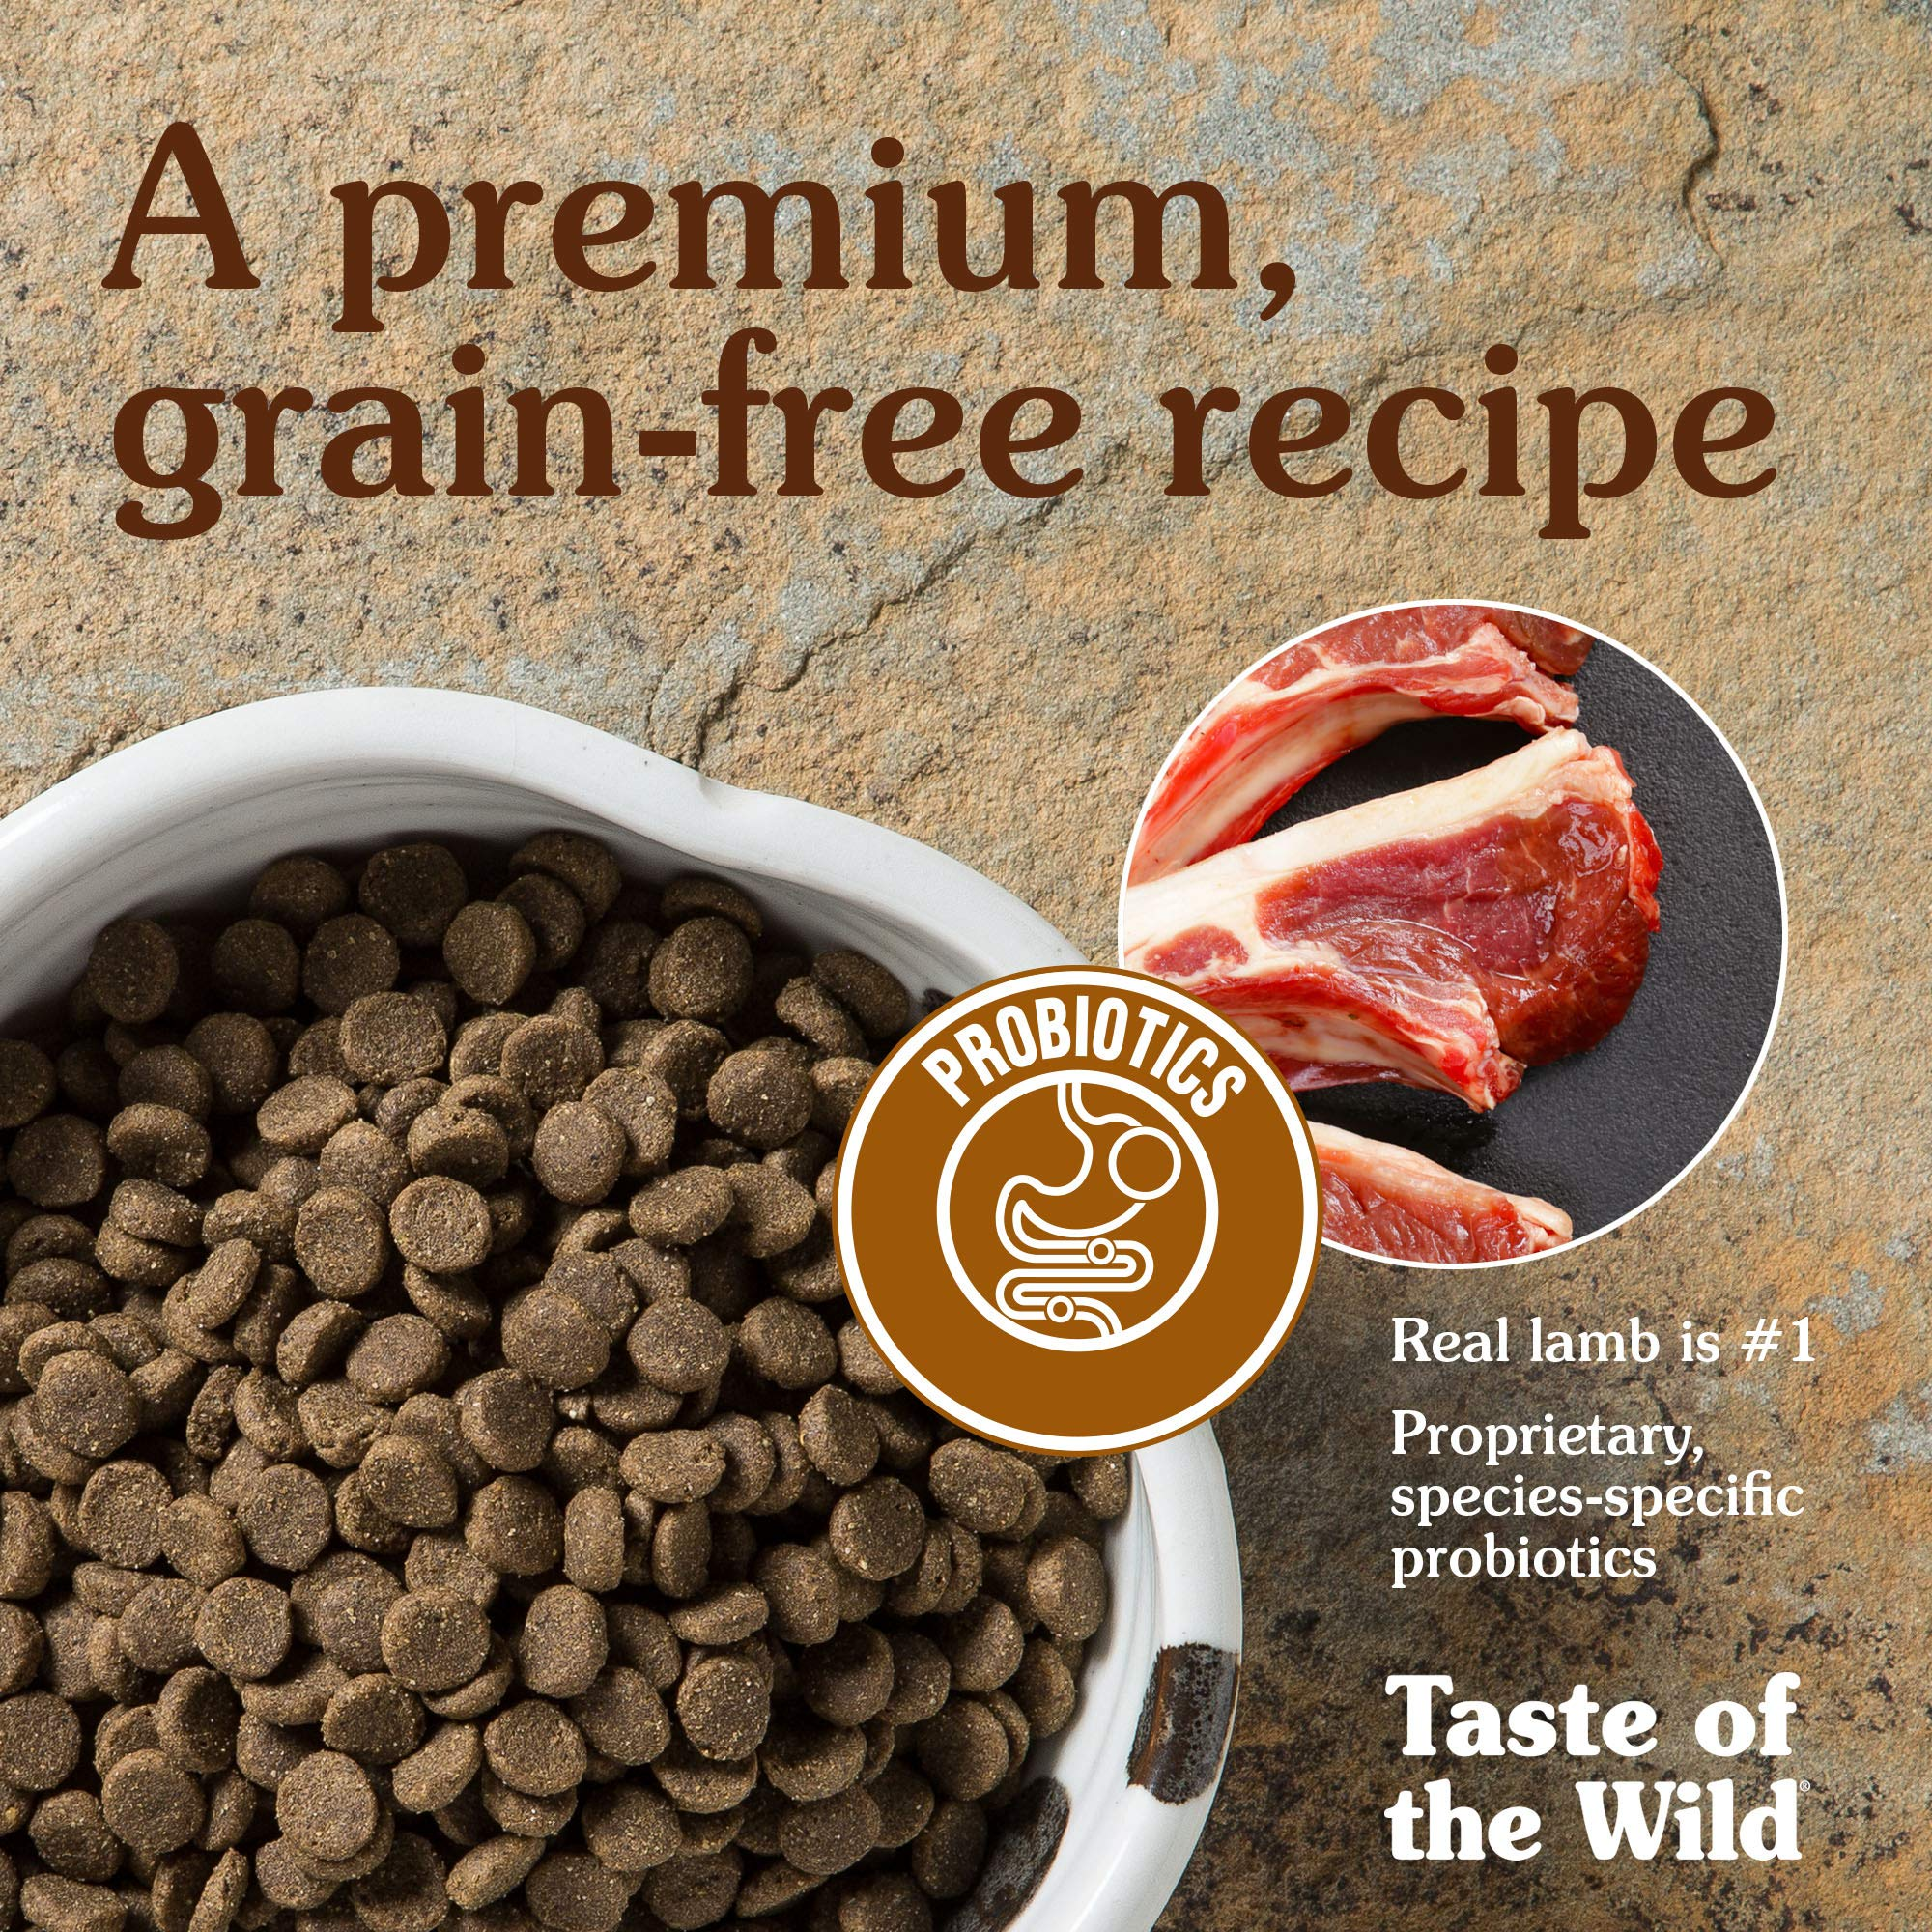 Taste of the Wild Grain Free High Protein Real Meat Recipe Sierra Mountain Premium Dry Dog Food, 28 lb by Taste of the Wild (Image #6)